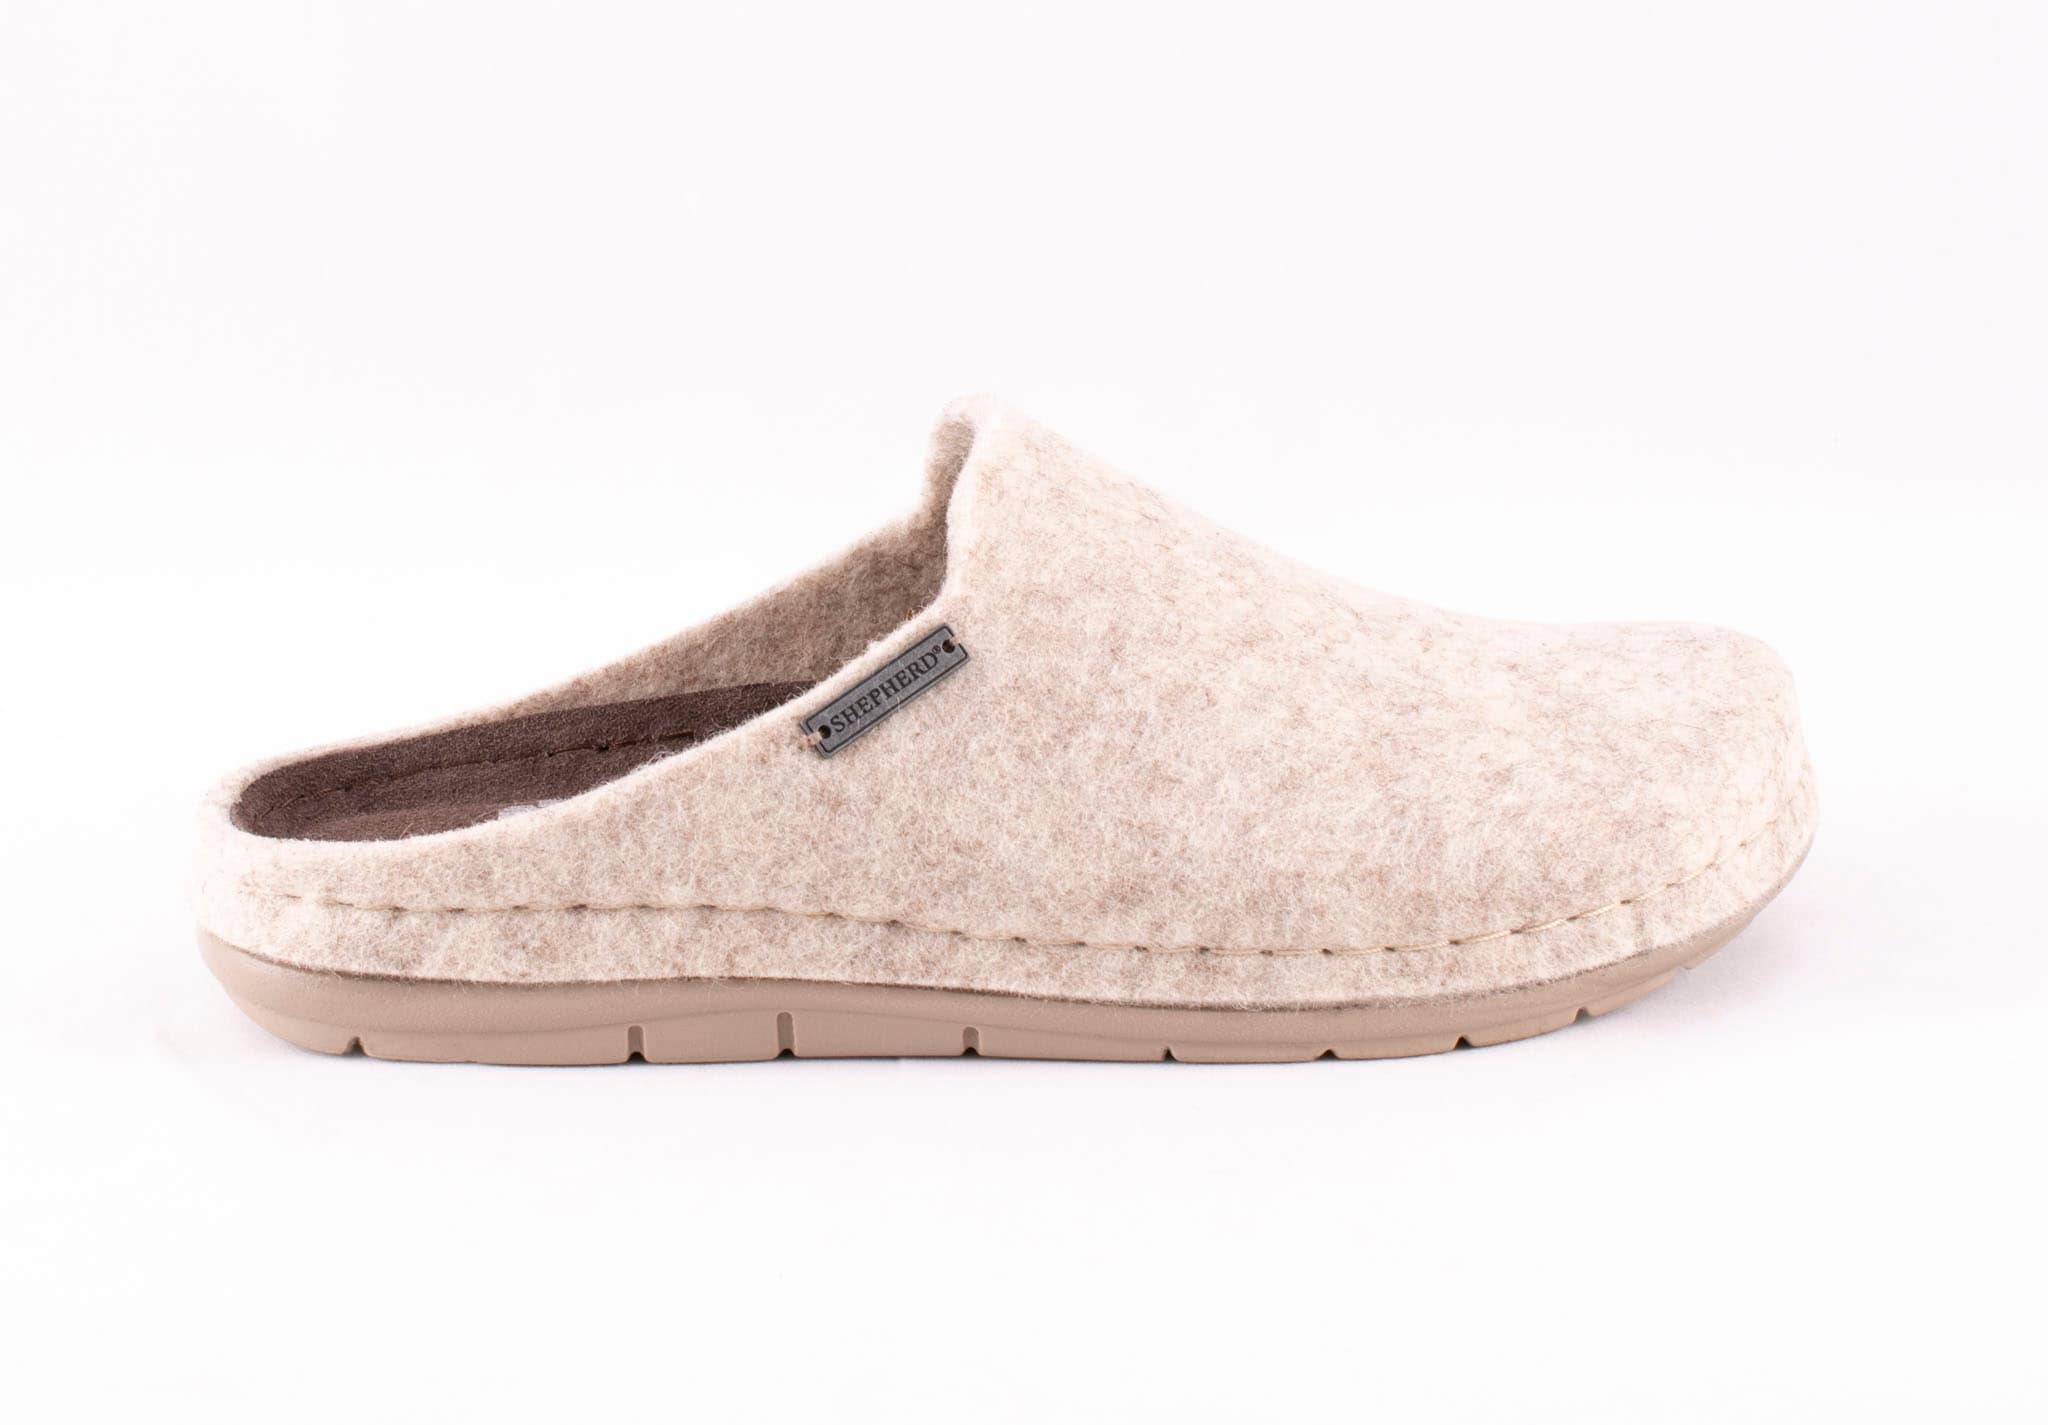 Shepherd Annsofie wool slippers